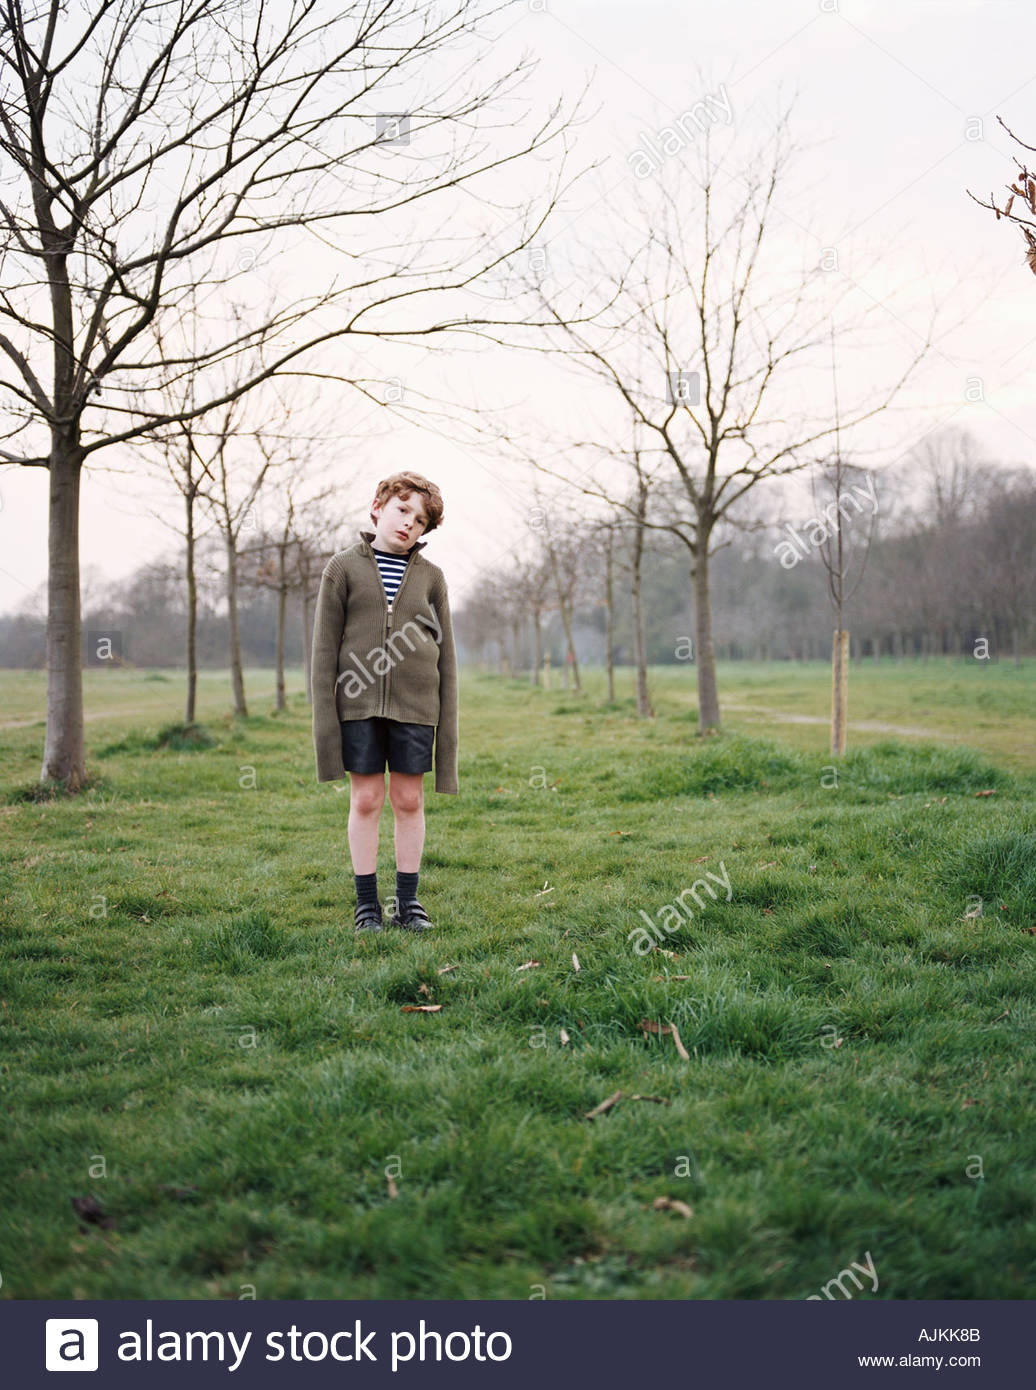 Boy standing in a field - Stock Image